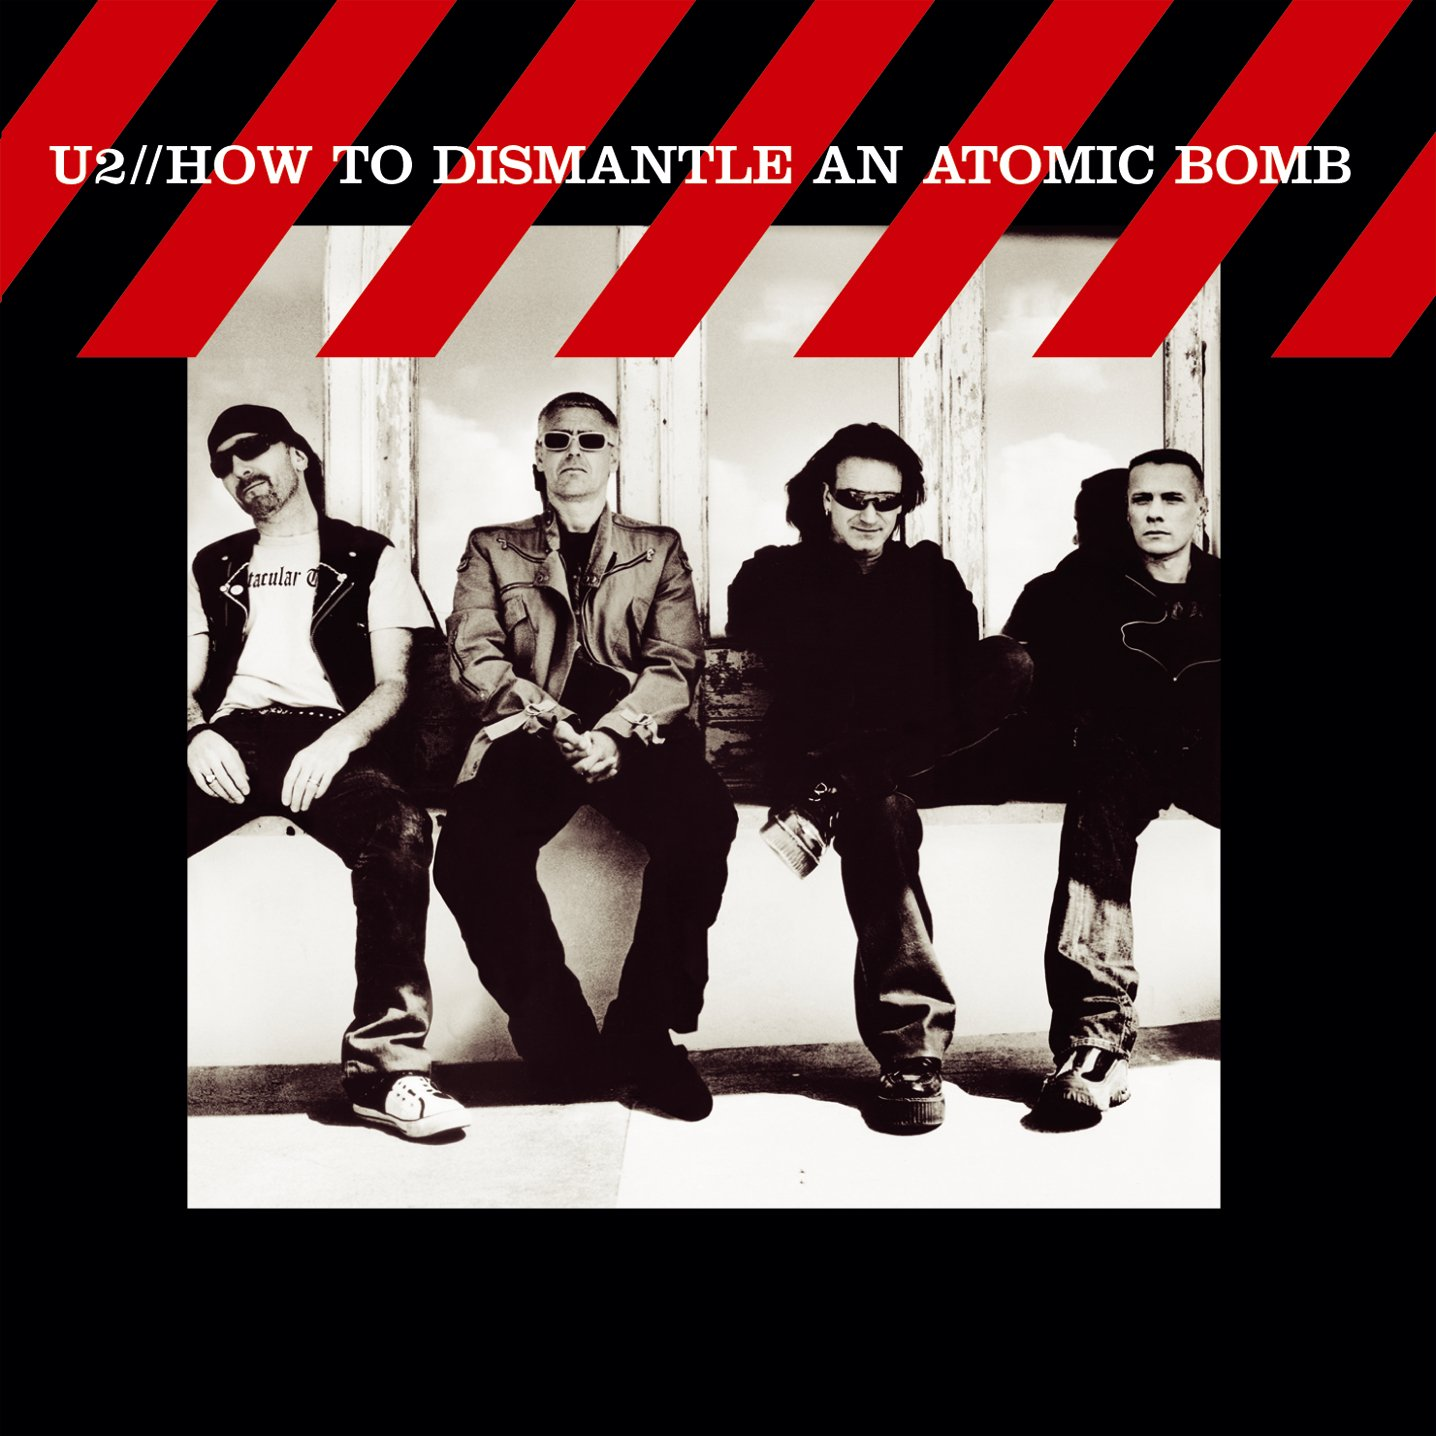 How To Dismantle and Atomic Bomb